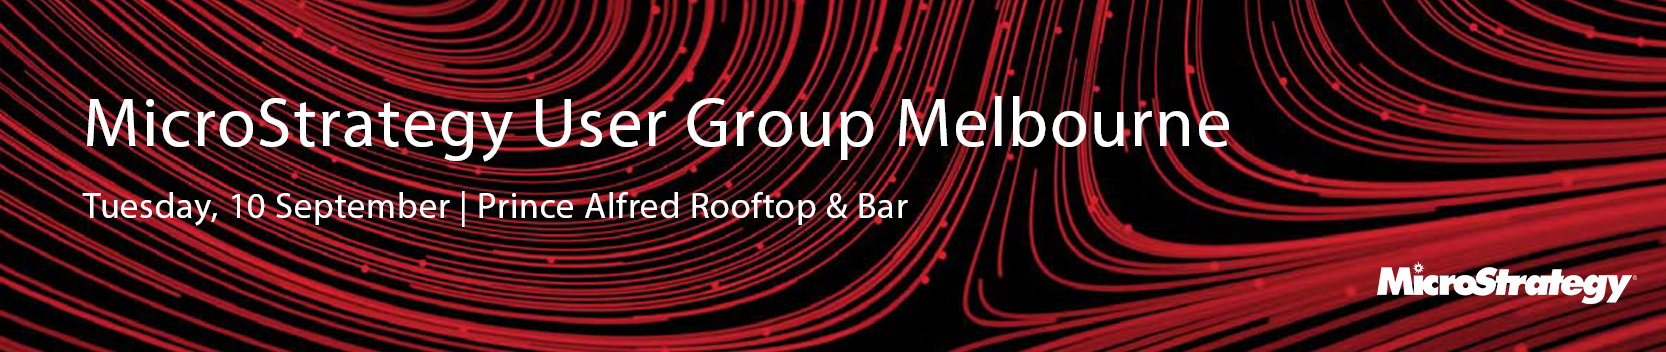 MicroStrategy User Group Melbourne